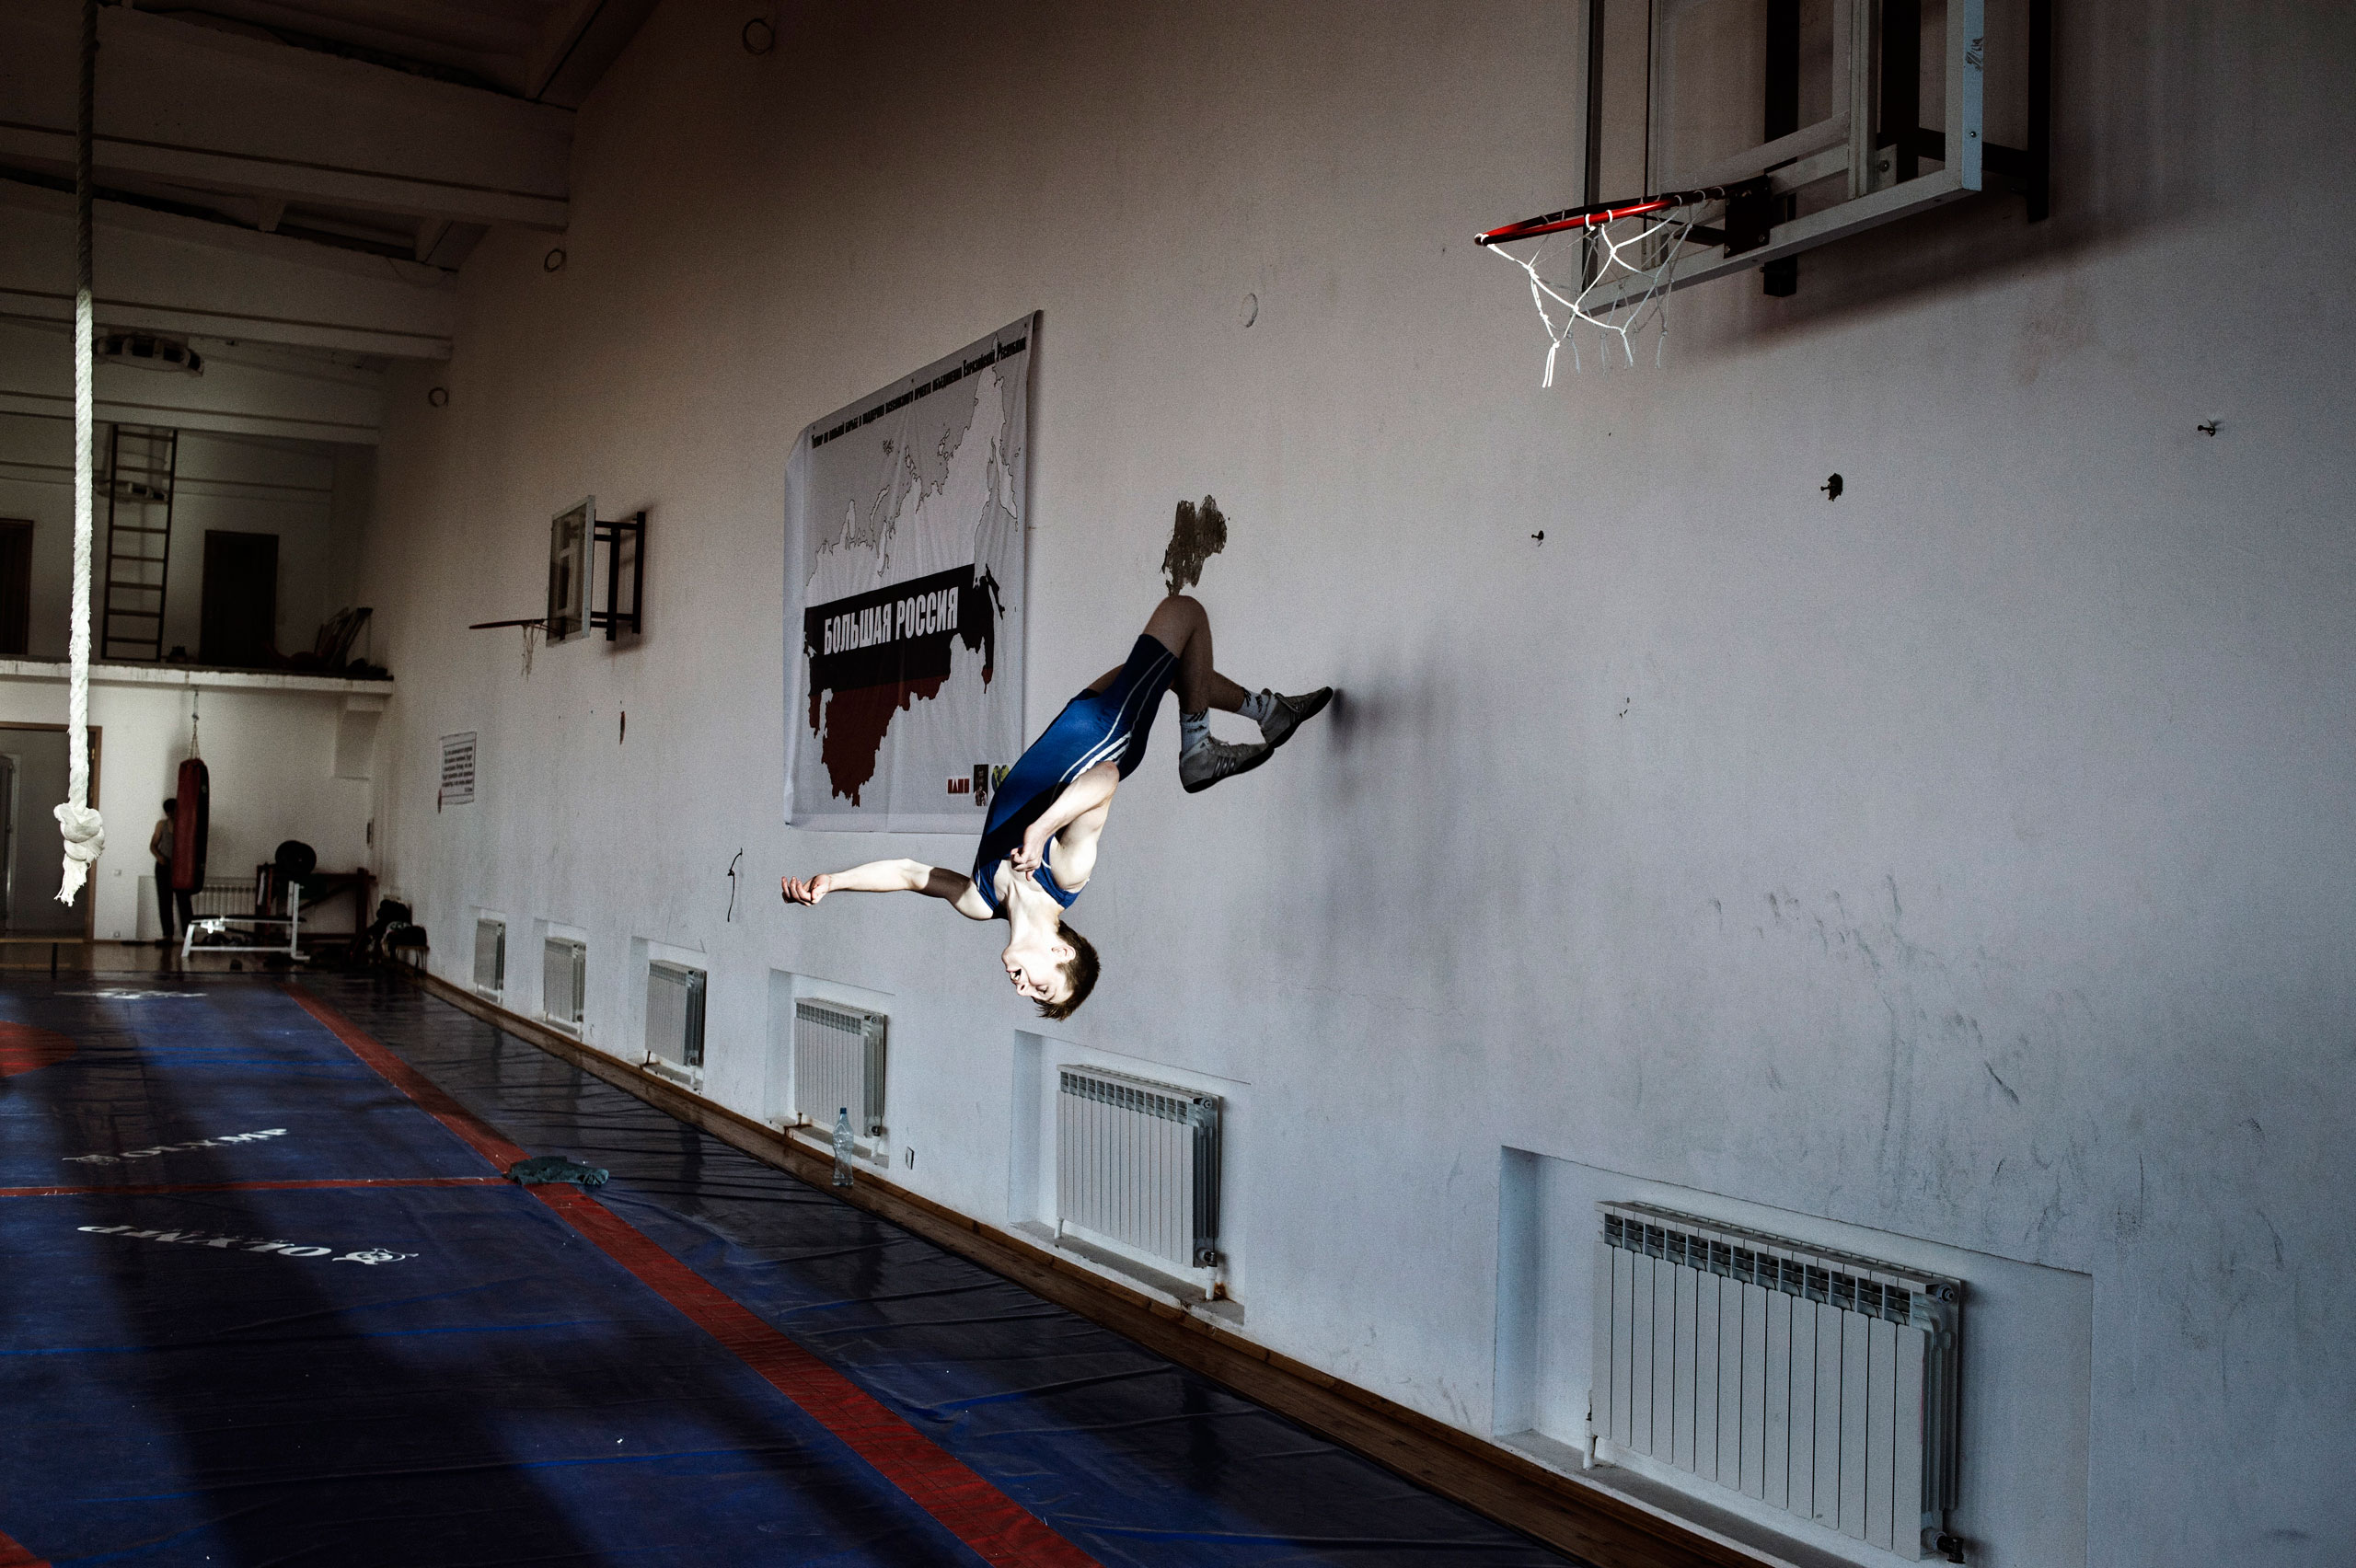 An amateur wrestler does a backflip against the wall of his gym during training in Khasav-Yurt, in the neighboring Dagestan. Moscow financially supports Khasavyurt's wrestling academies, which offer an outlet for local youth to channel their strength to wrestling rather than rebellion, June 2012.